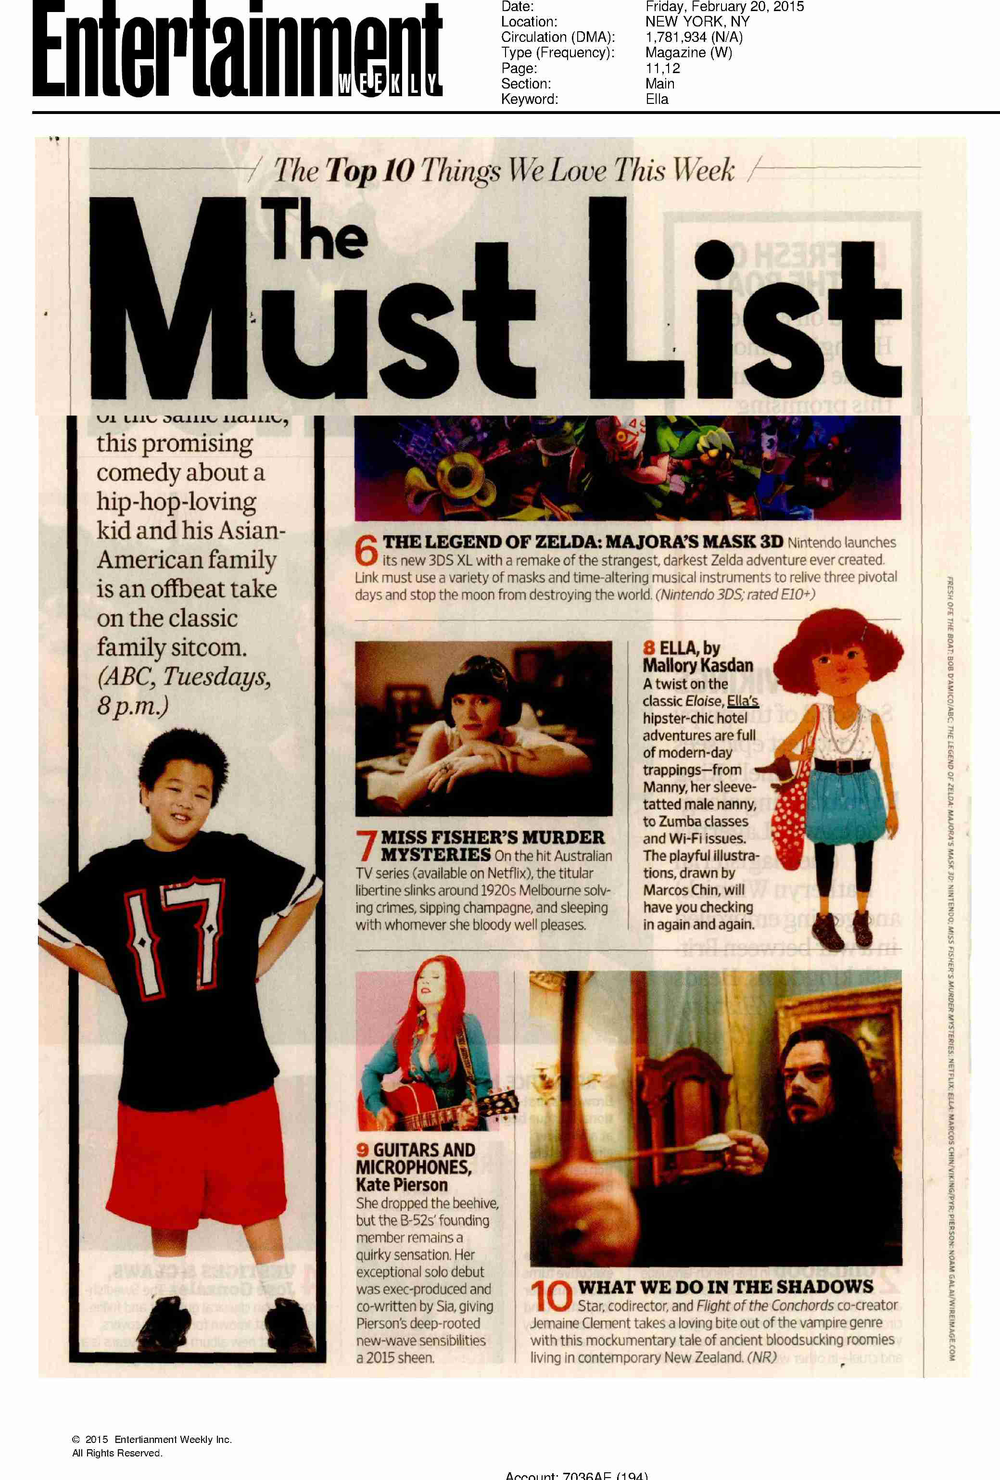 entertainment magazine press clip must list ella by mallory kasdan.png